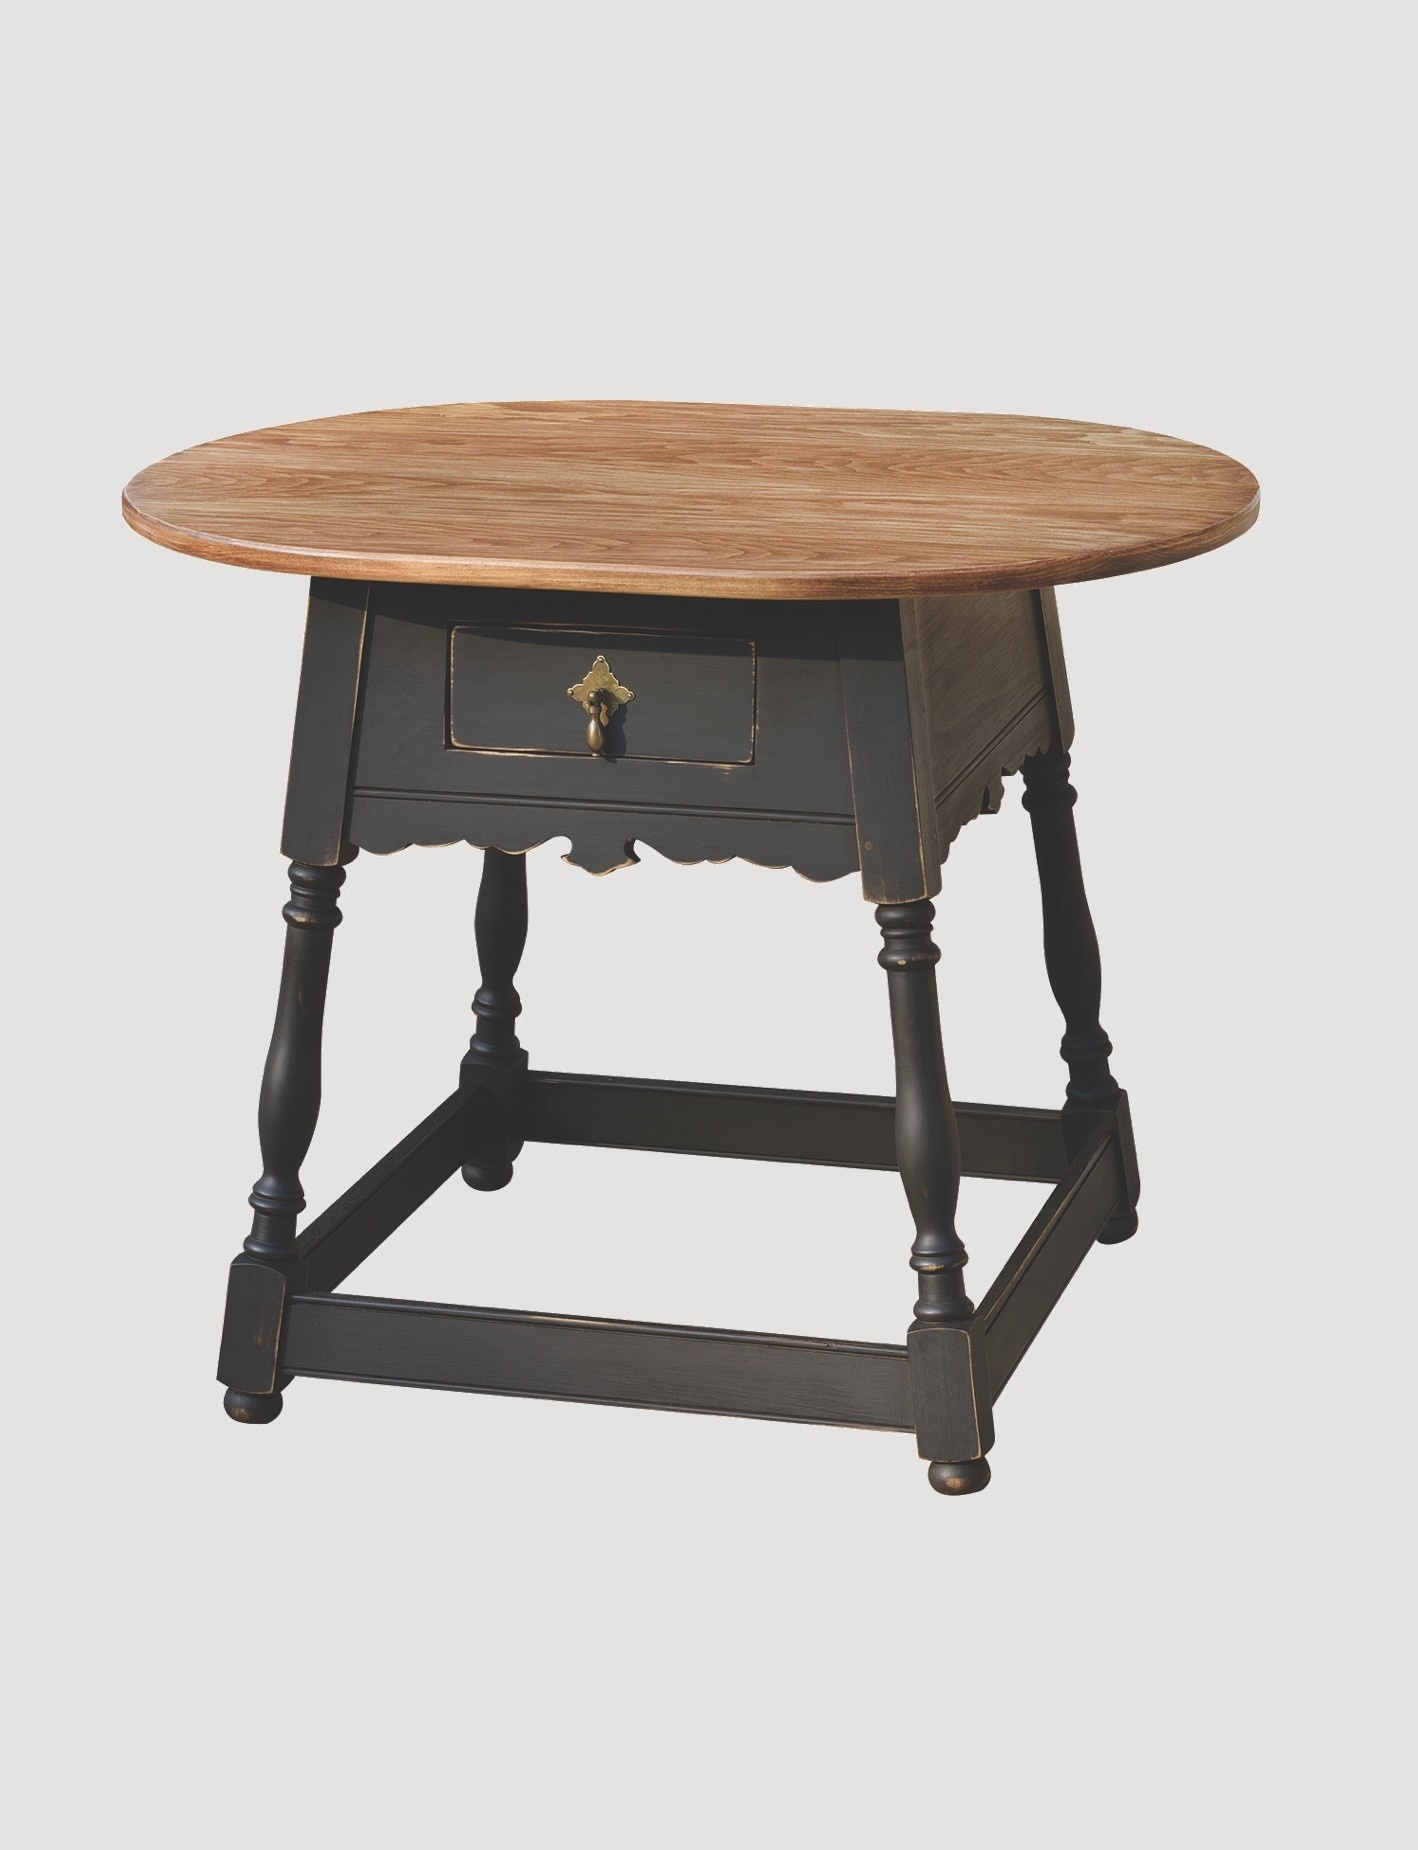 Nana's Farmhouse Tavern Table with Pine Top & Black Rubbed Legs